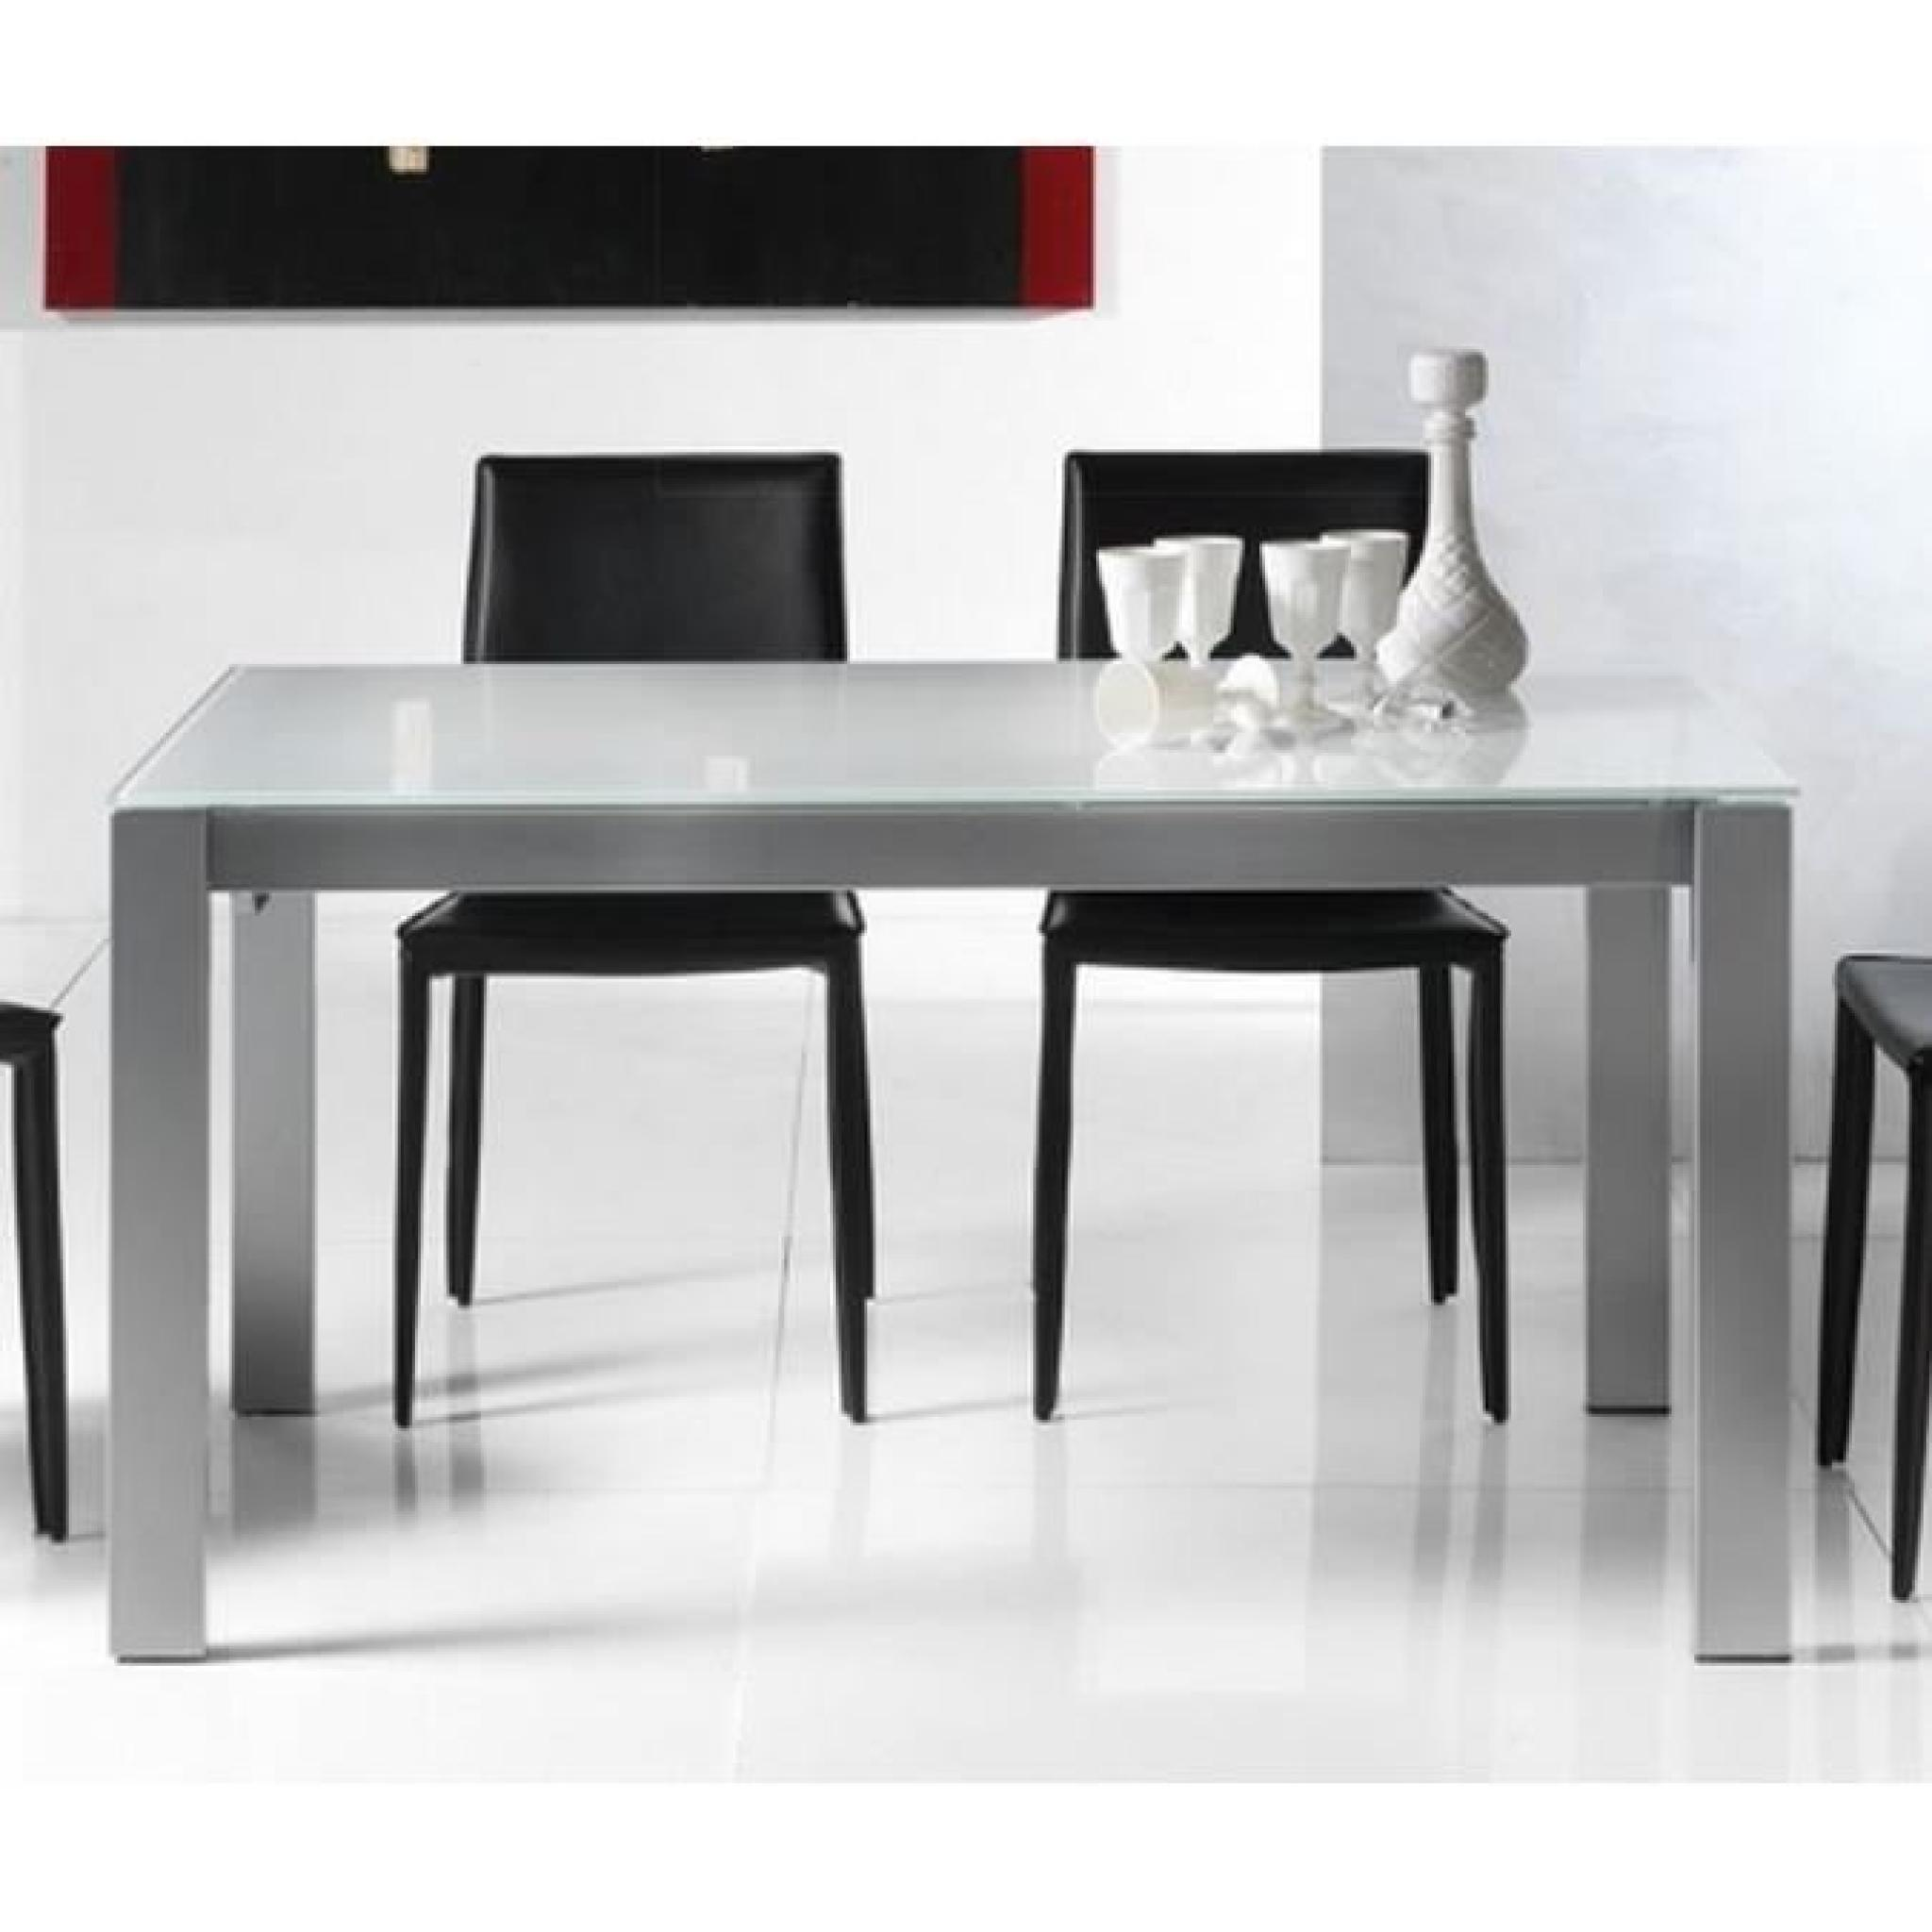 Table extensible salle manger salvador noyer pas cher of for Table 140 cm extensible